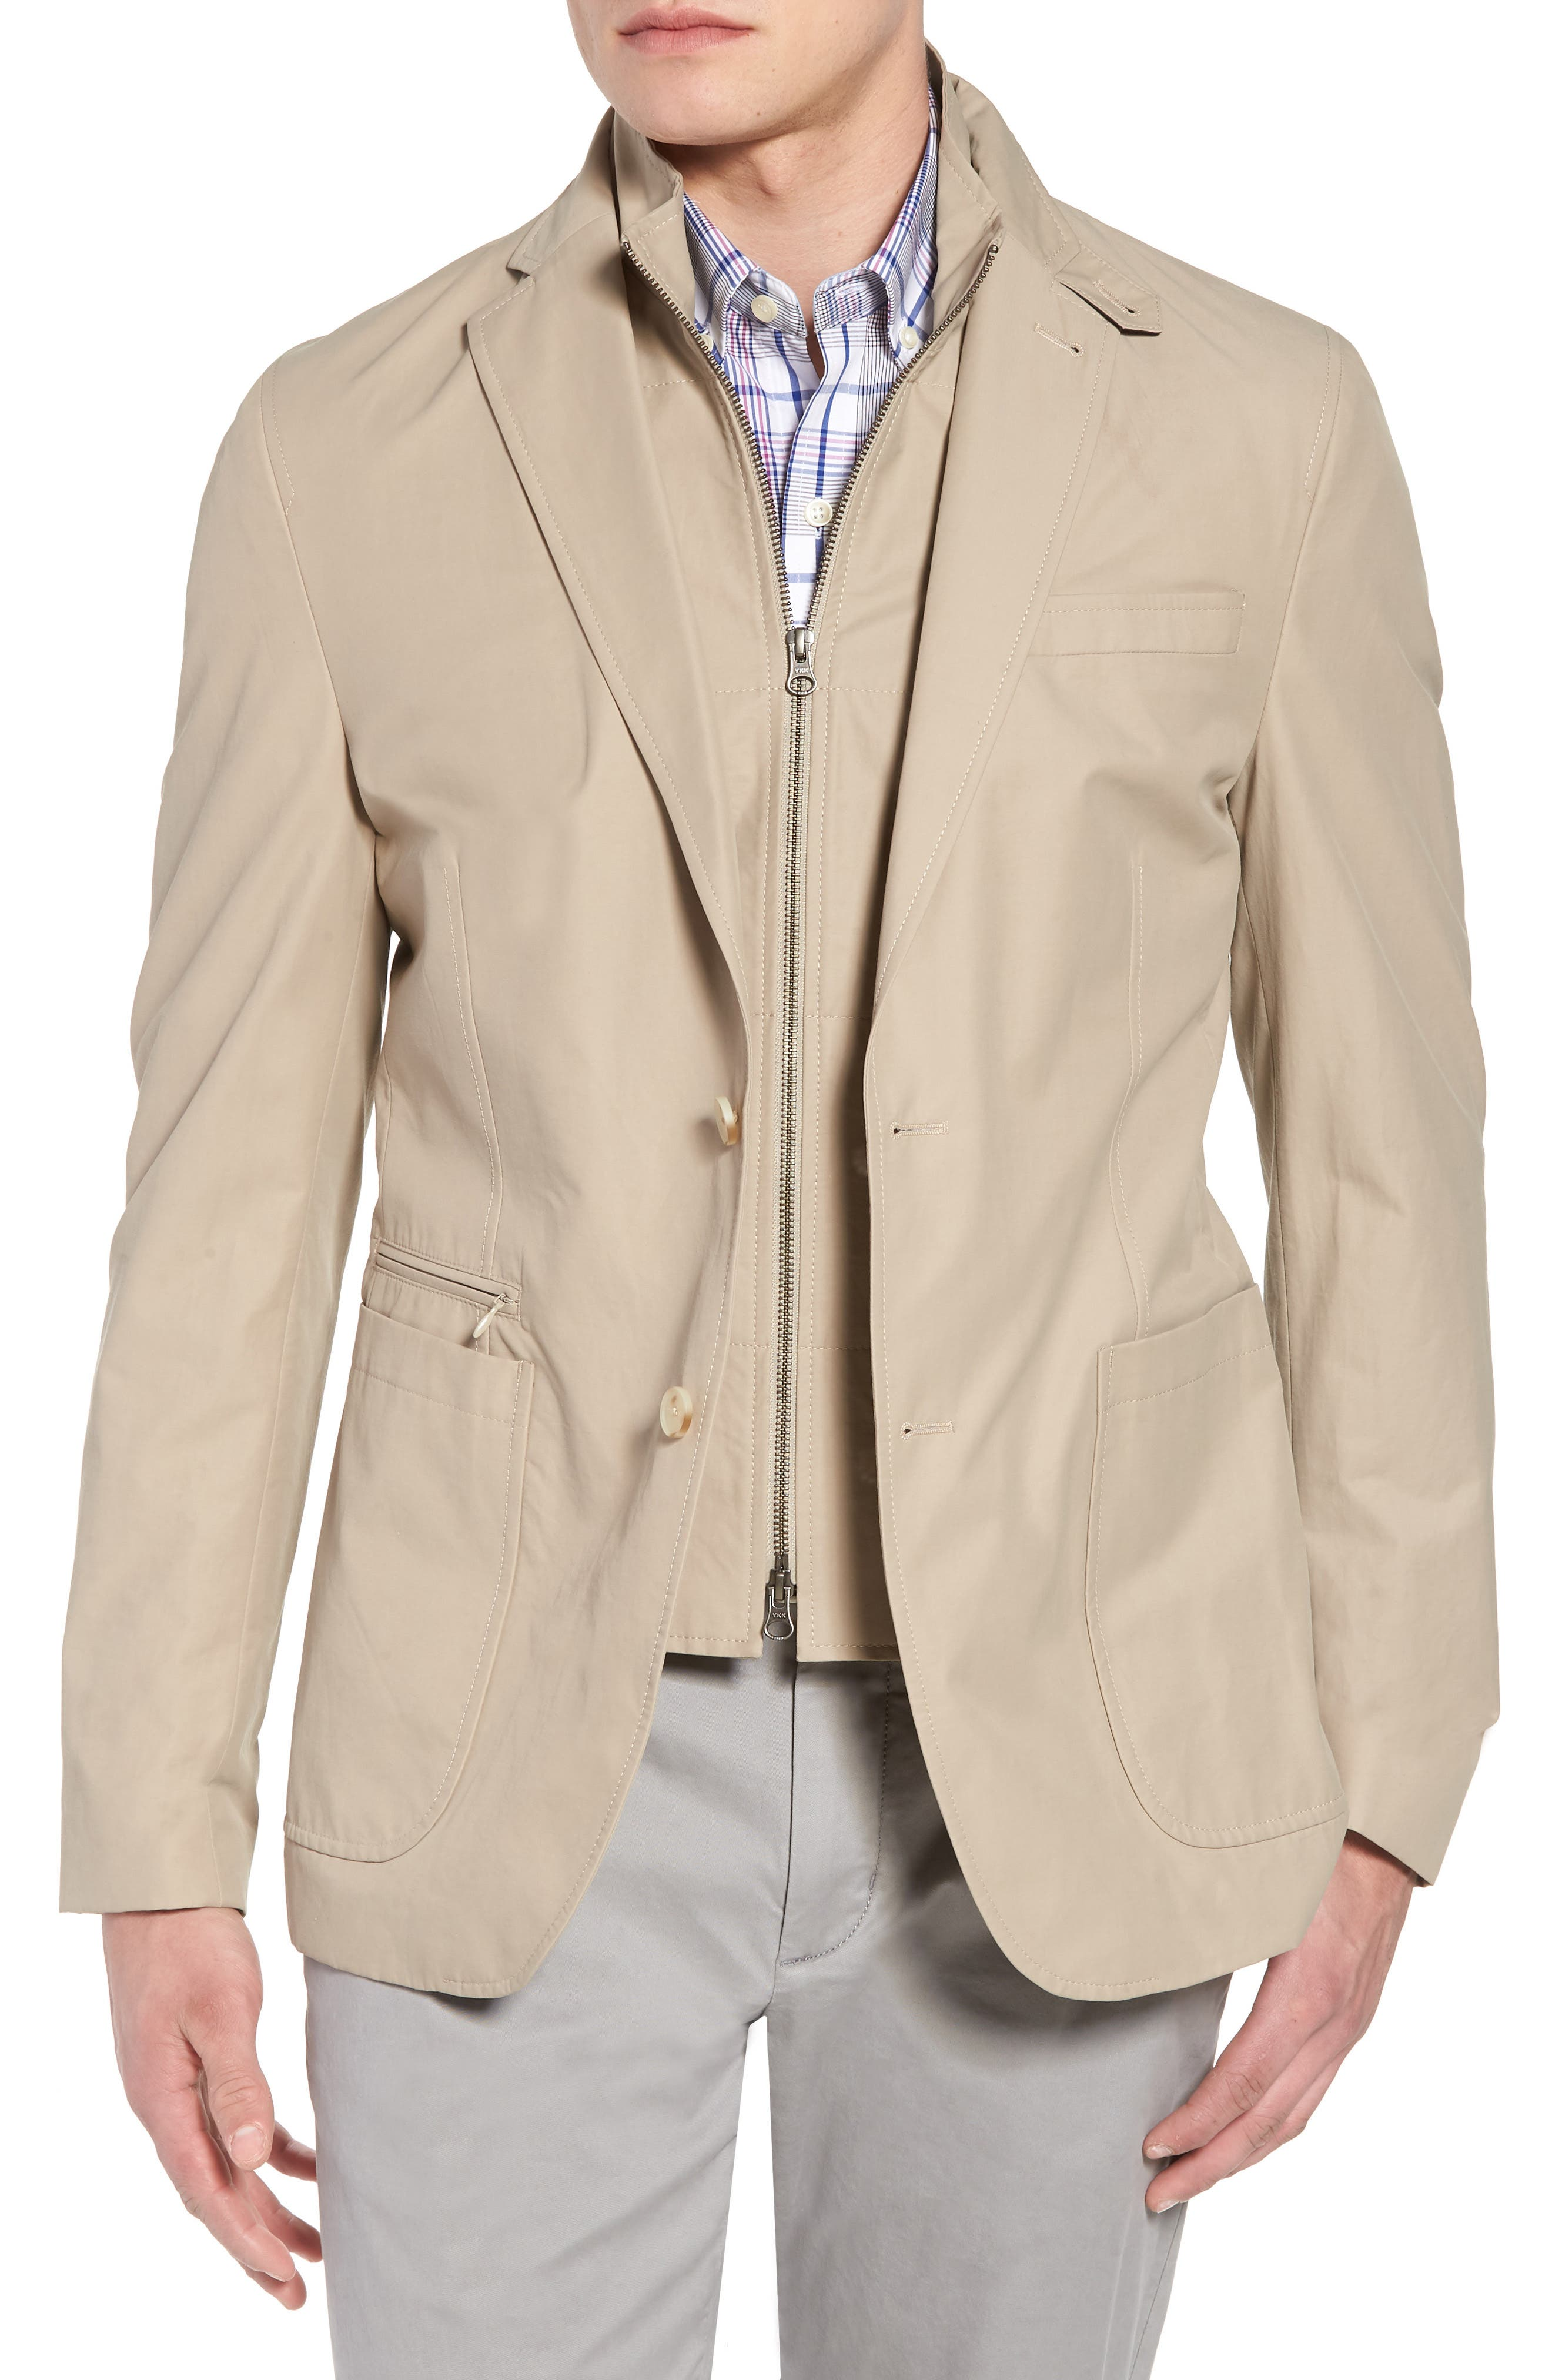 Jones AIM Classic Fit Hybrid Blazer,                             Main thumbnail 1, color,                             Tan